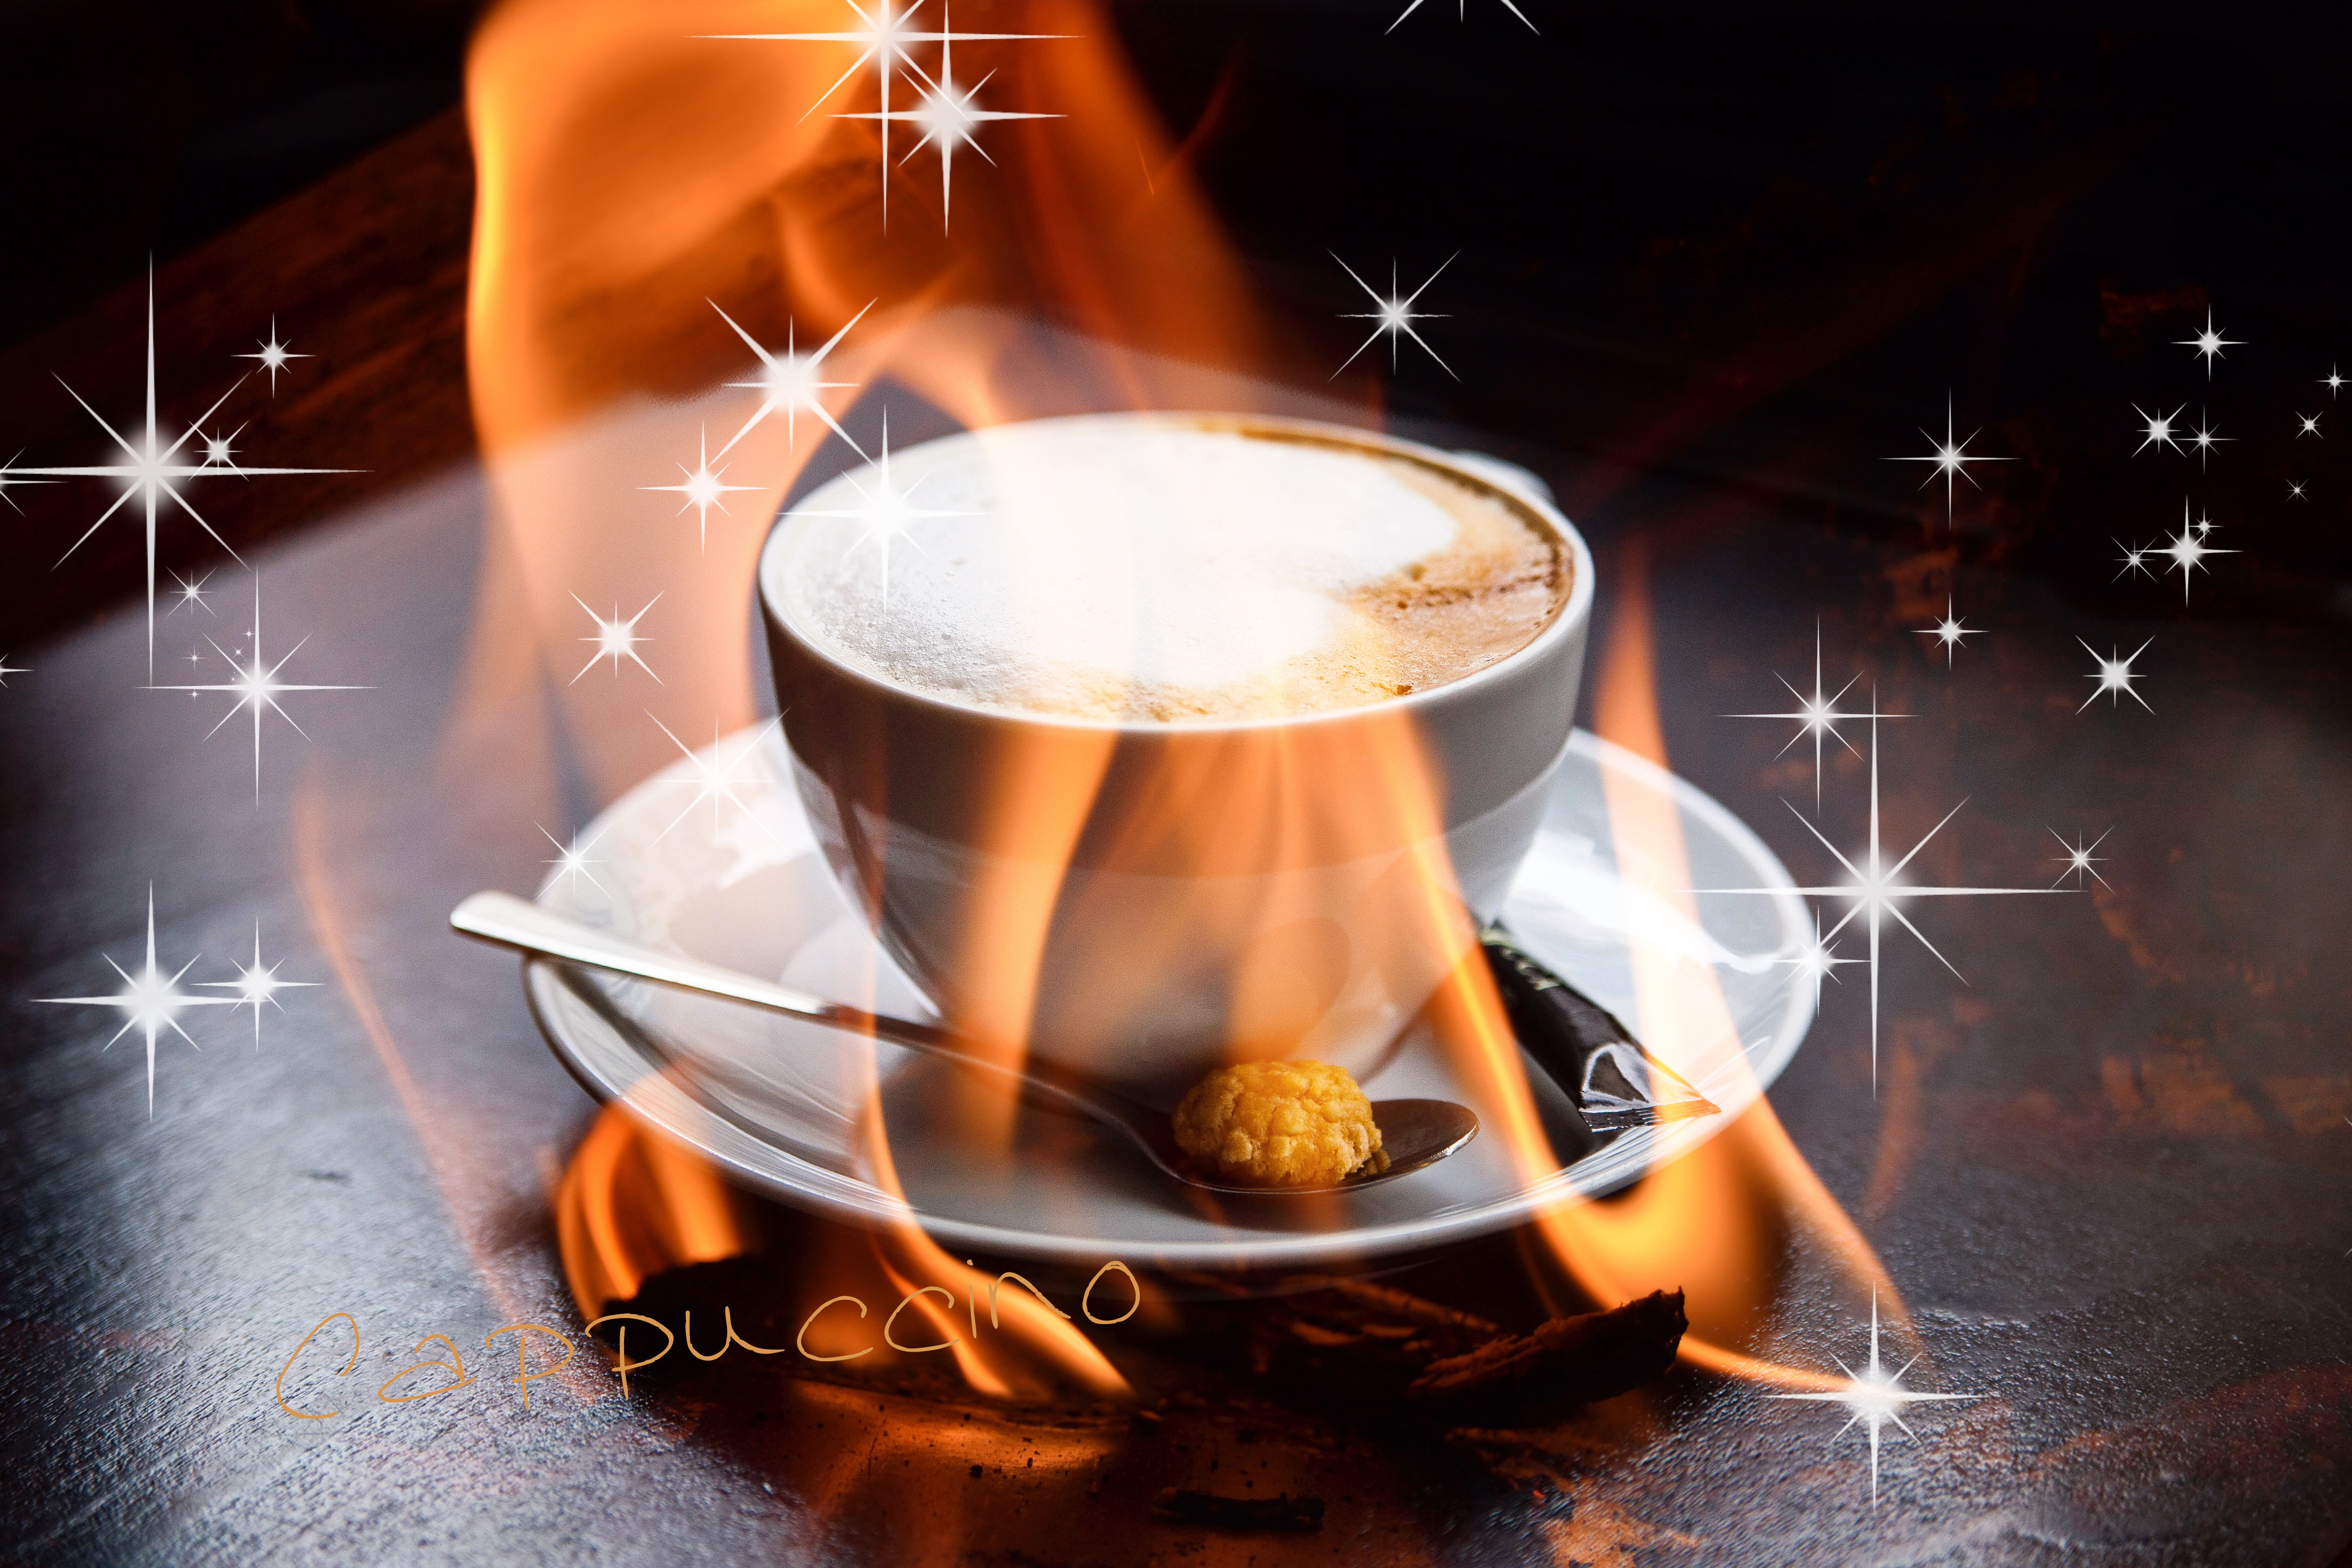 Cappuccino, flame, fire, cozy, spoon